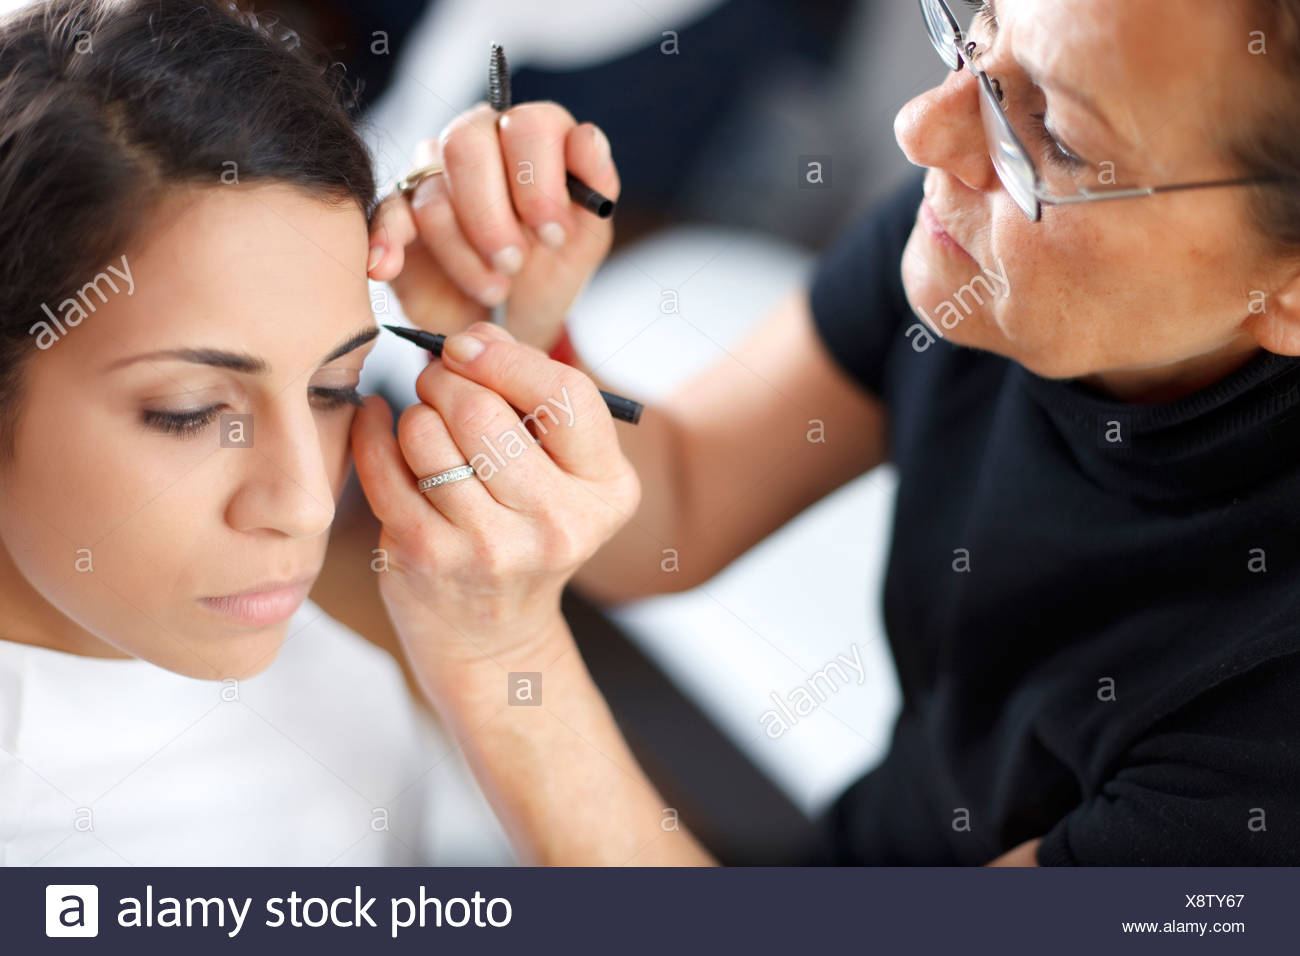 Getting Eyebrows Done Stock Photos Getting Eyebrows Done Stock